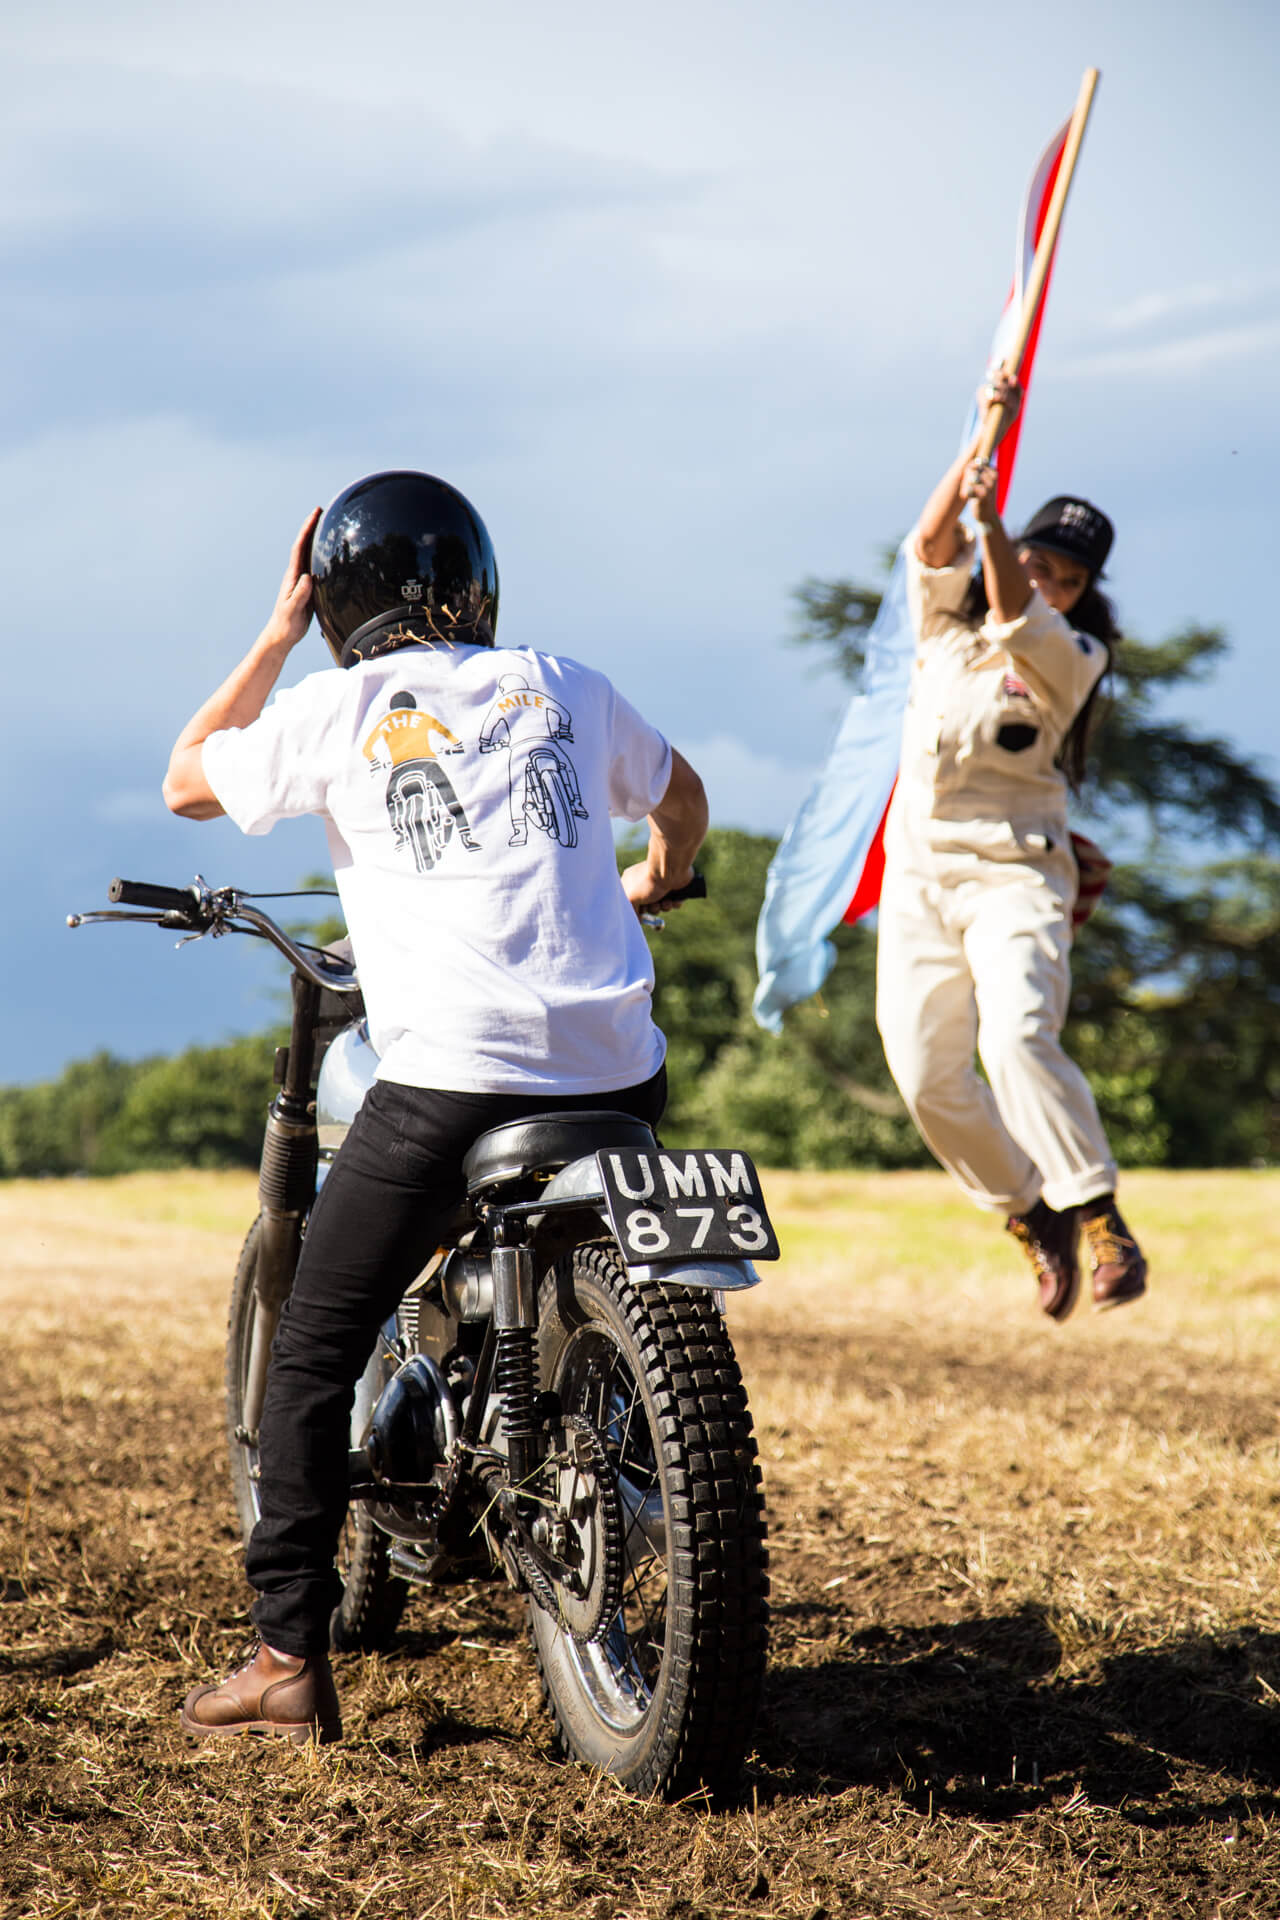 Malle Mile, Event, Motorcycle, Richard, Summer, WeAreShuffle, Agency, Photography, Film, Production, Malle London, Triumph, Flag, Biker, Field, Race, Helmet, Dirt, Air, Jump